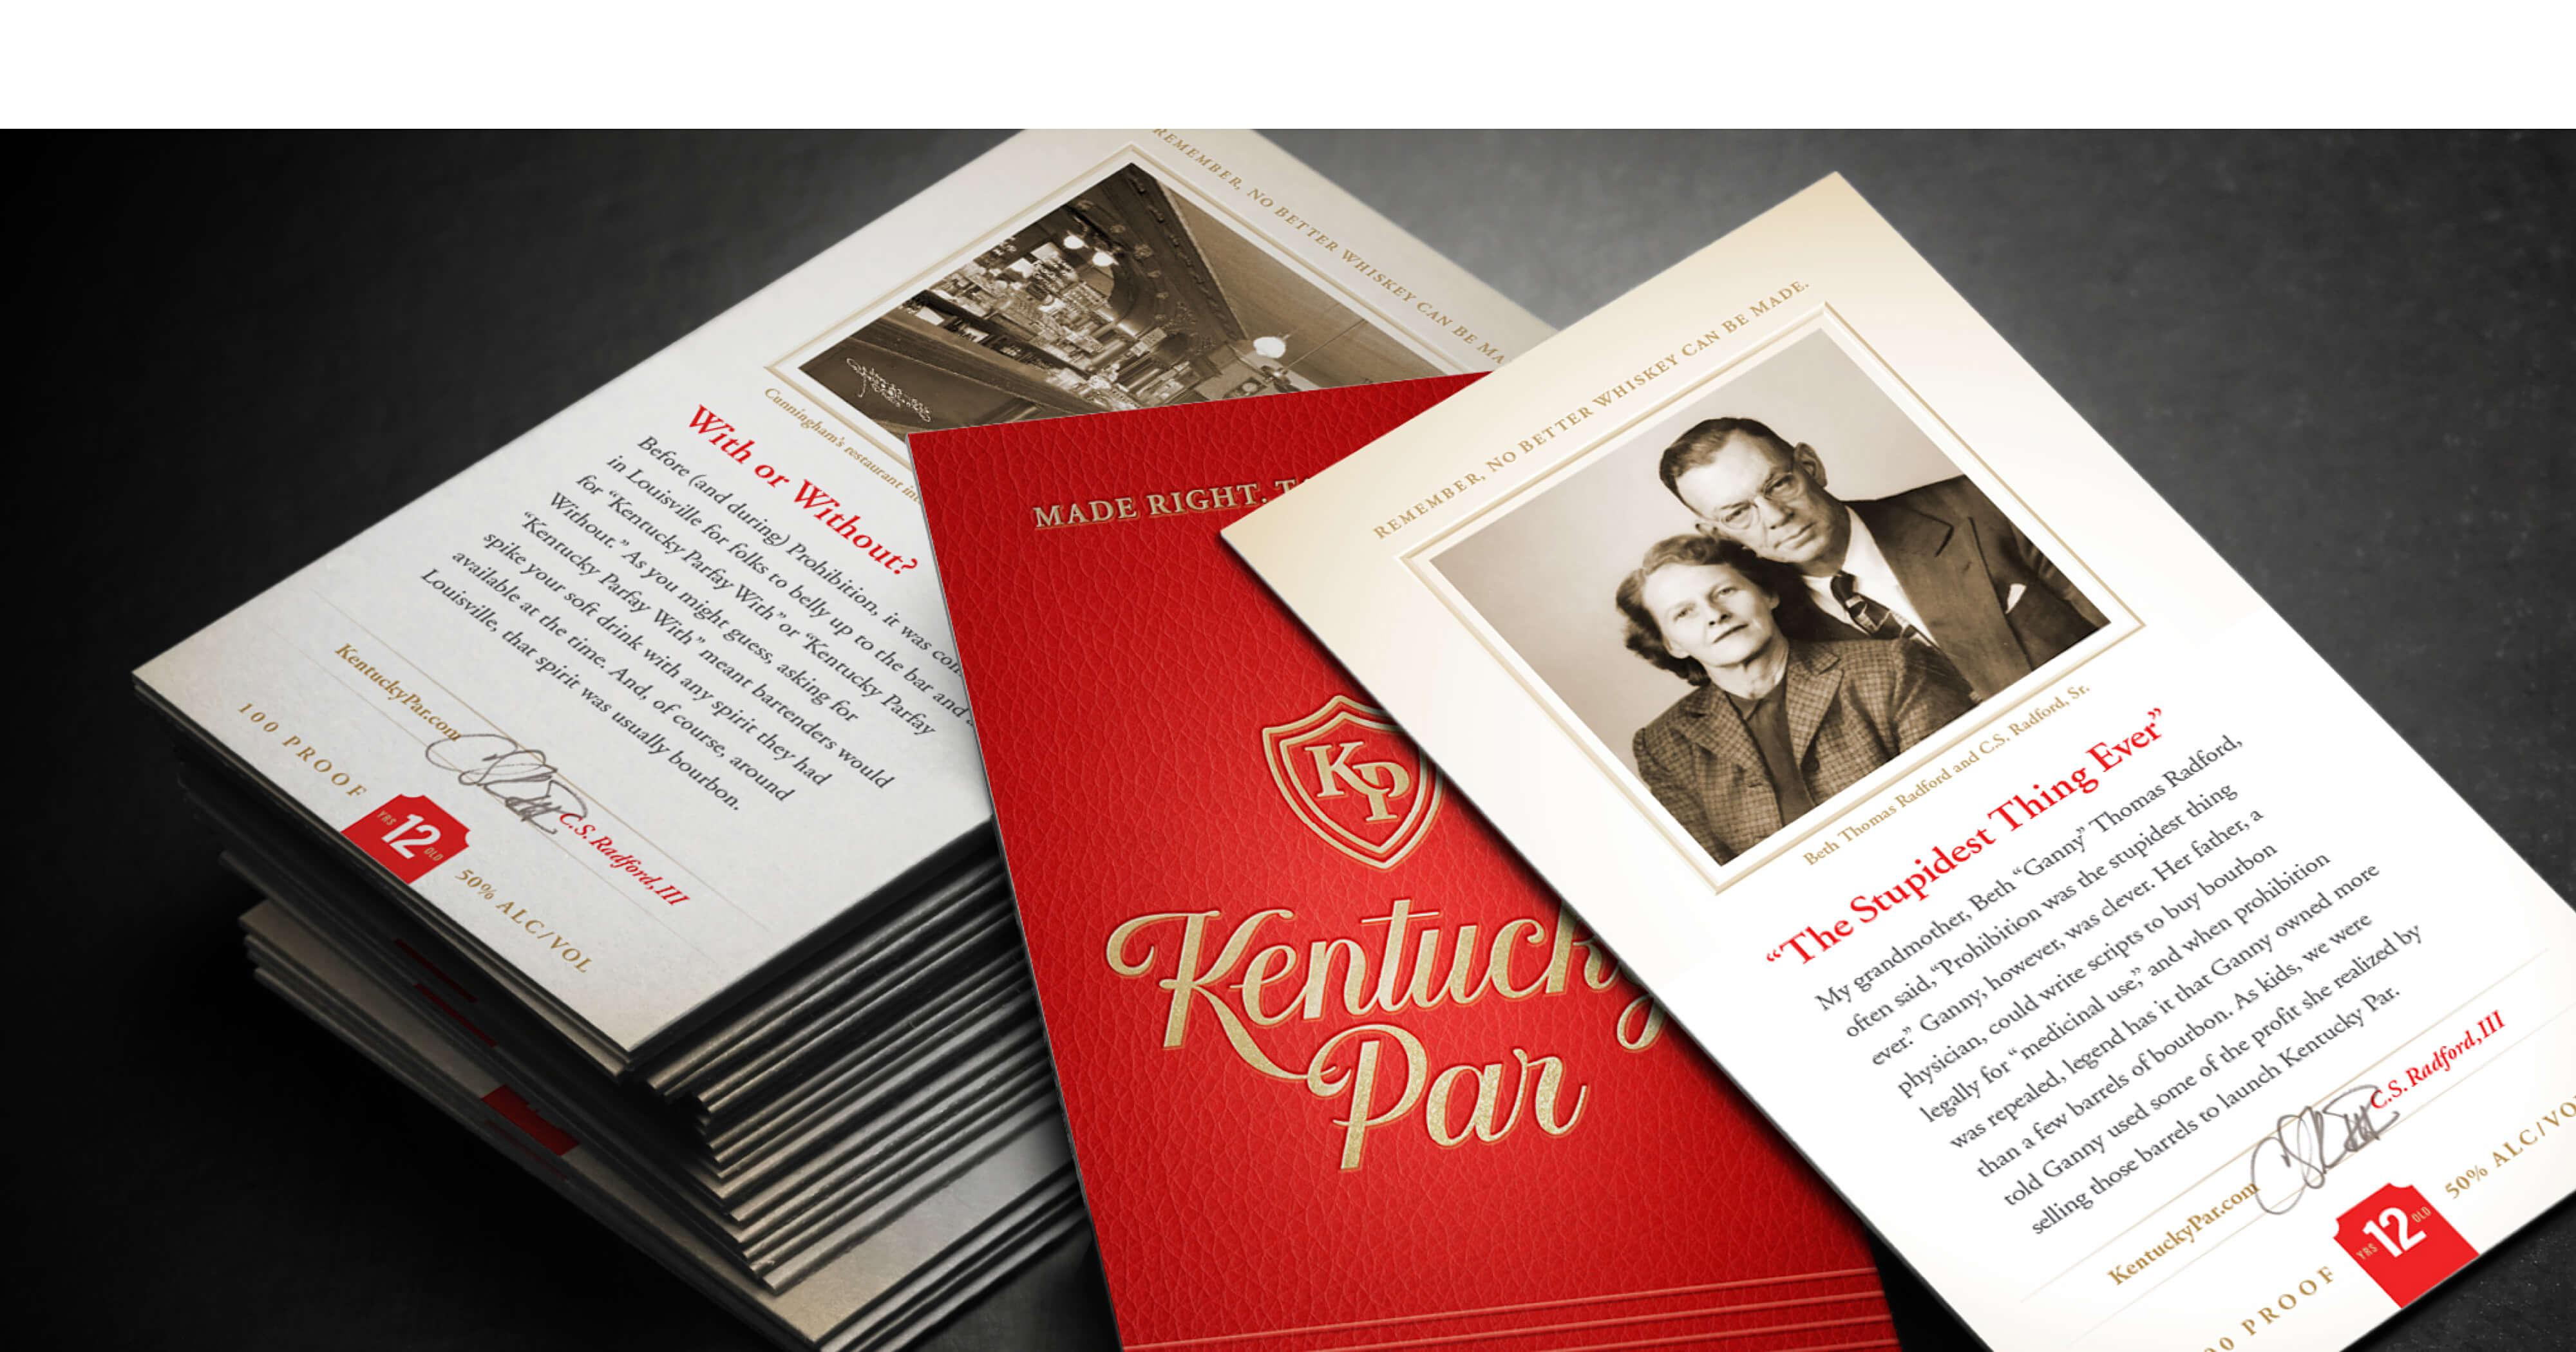 Kentucky Par Bourbon Story Cards